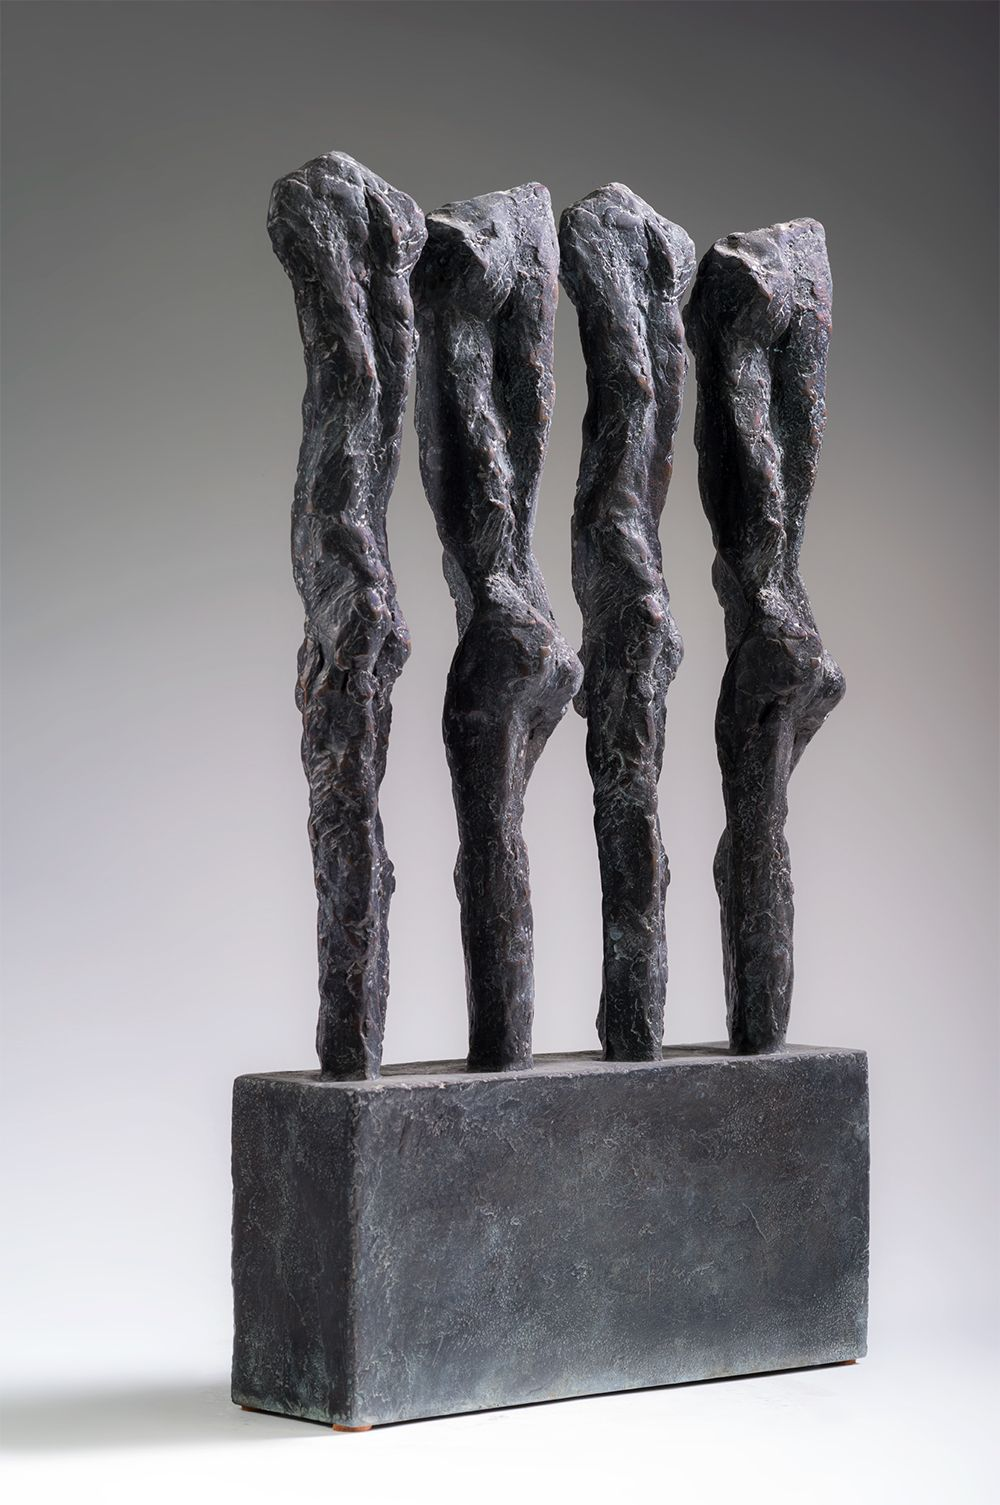 In line, Primary Forms series - Martine Demal - Sculpture